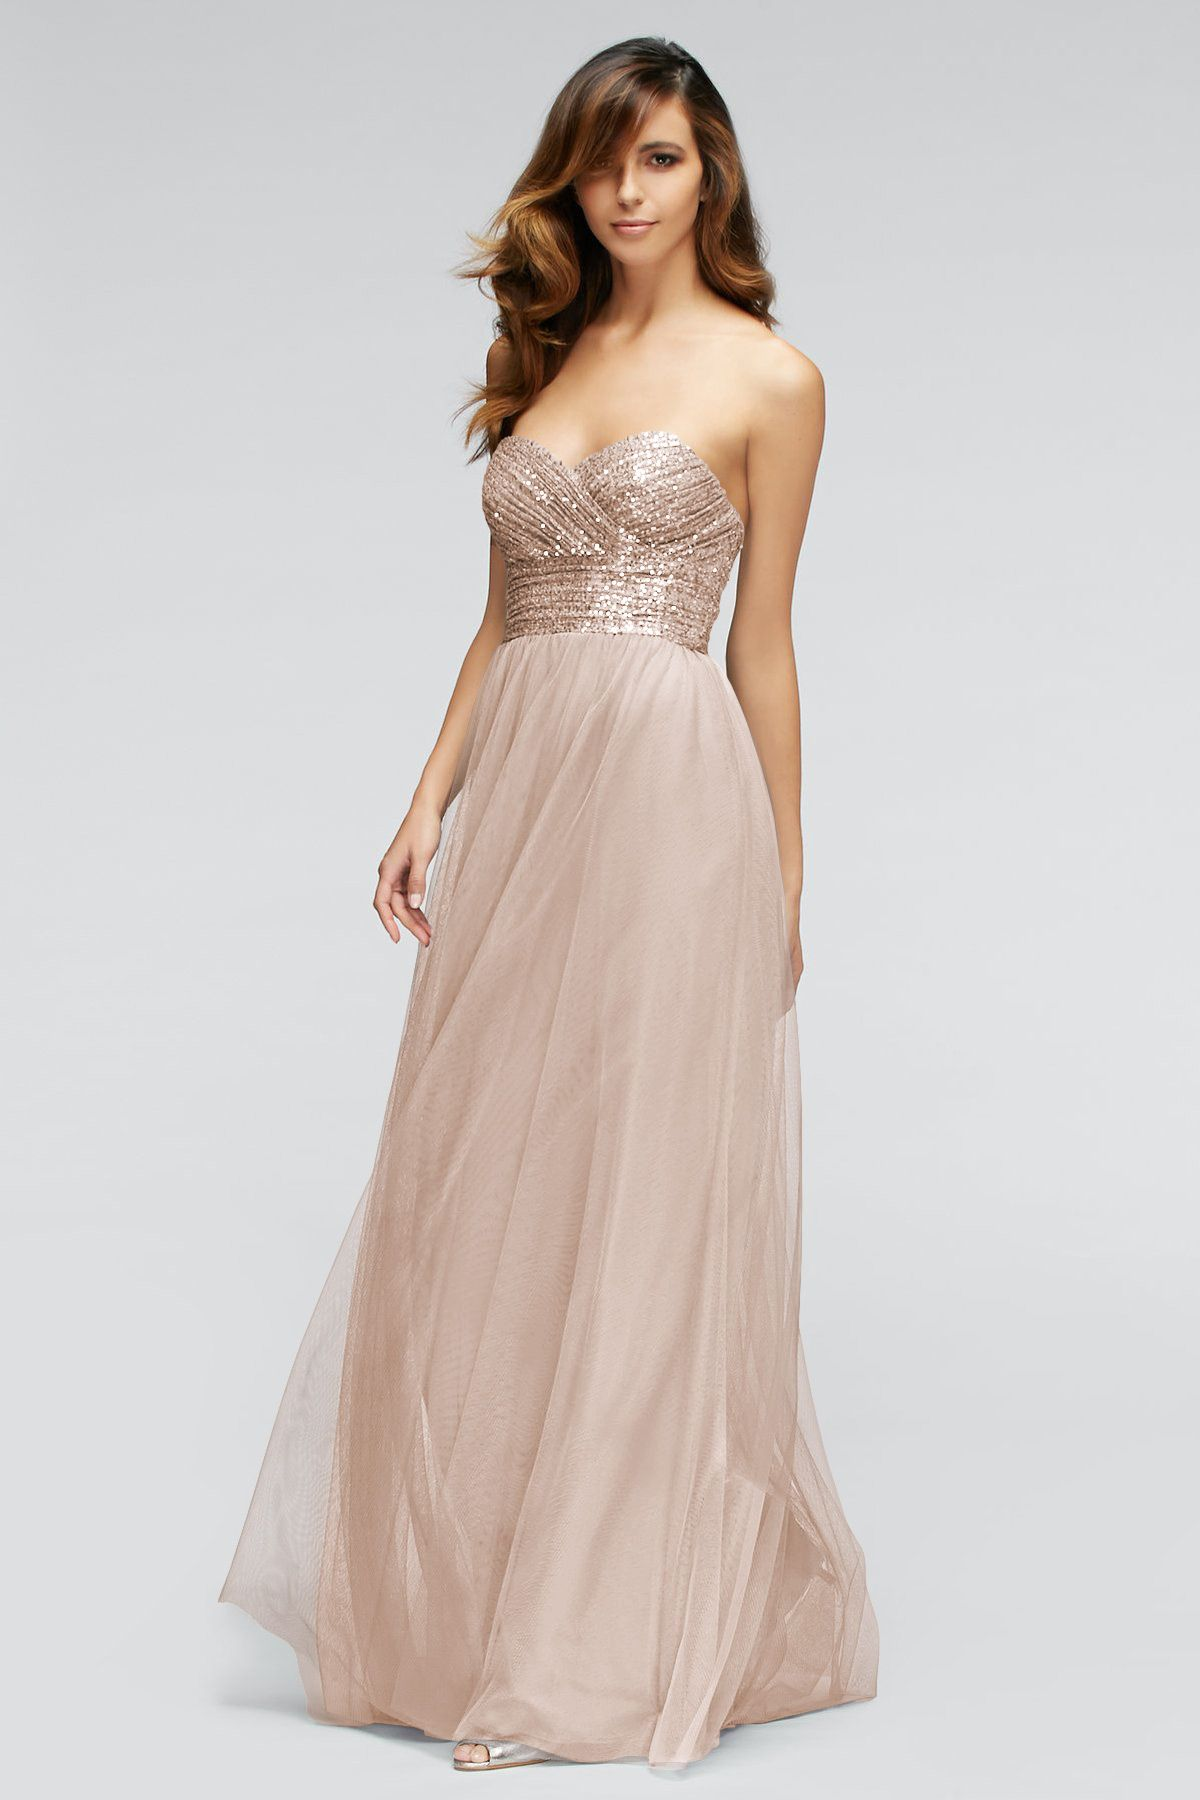 Mediauploadsproduct1313coloredlusterg bridesmaid dresses mediauploadsproduct1313coloredlusterg bridesmaid inspirationbridesmaid ideasbridesmaidsbridesmaid dressesparty ombrellifo Images